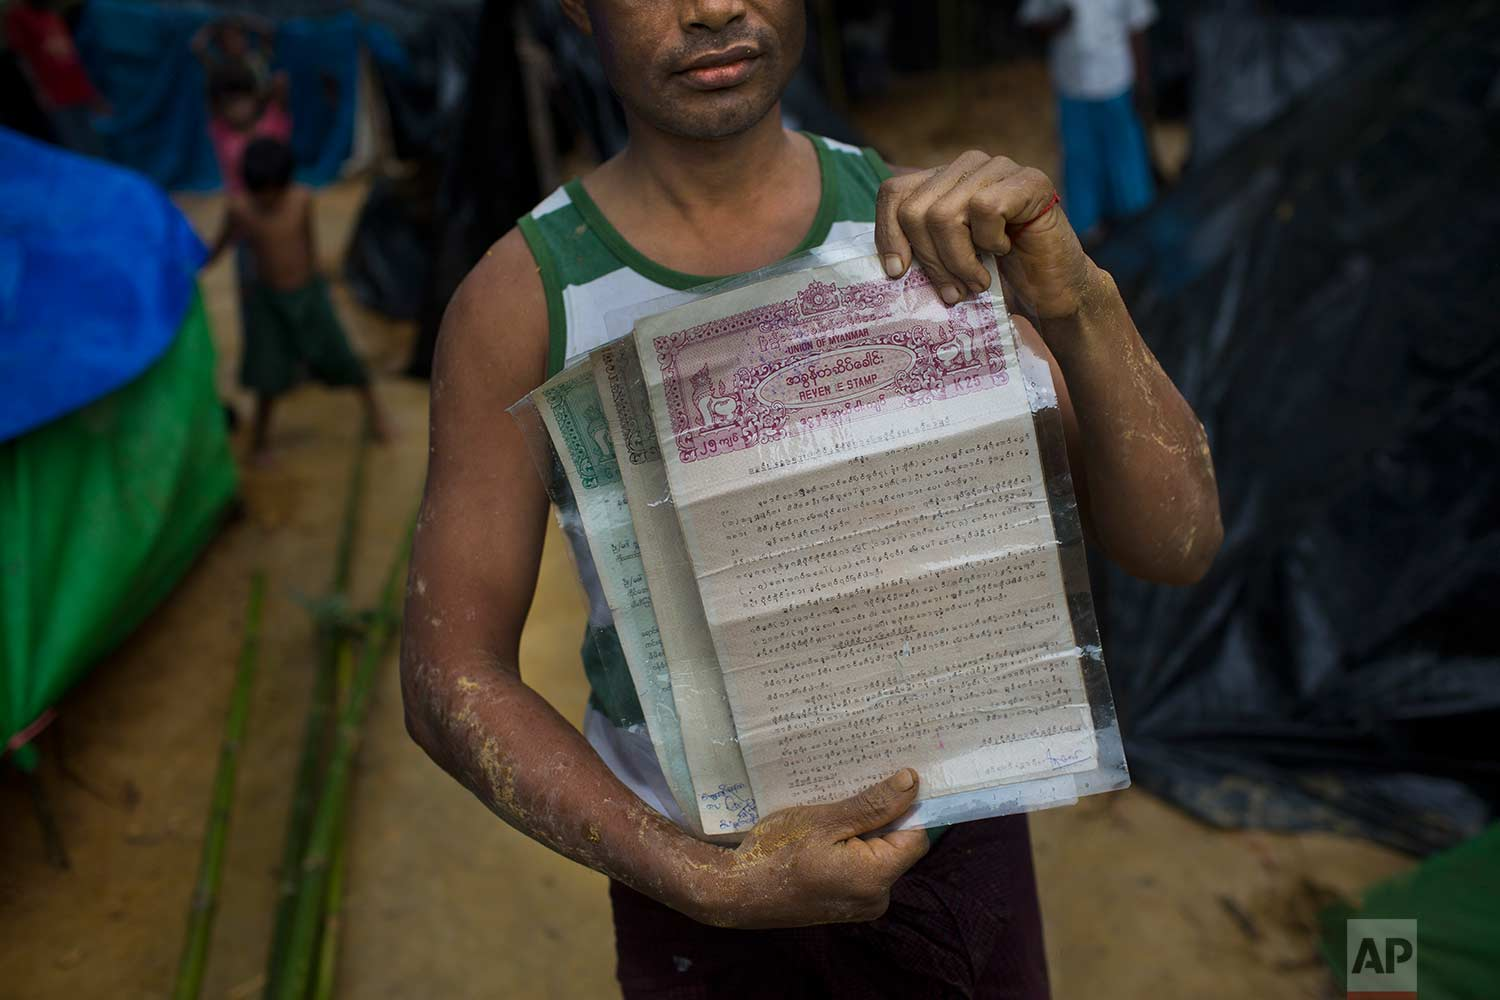 A Rohingya Nur Bashar, who recently crossed over the border from Myanmar into Bangladesh, holds documents of property and land his family owns in Myanmar, in Kutupalong, Bangladesh, Friday, Sept. 8, 2017. (AP Photo/Bernat Armangue)